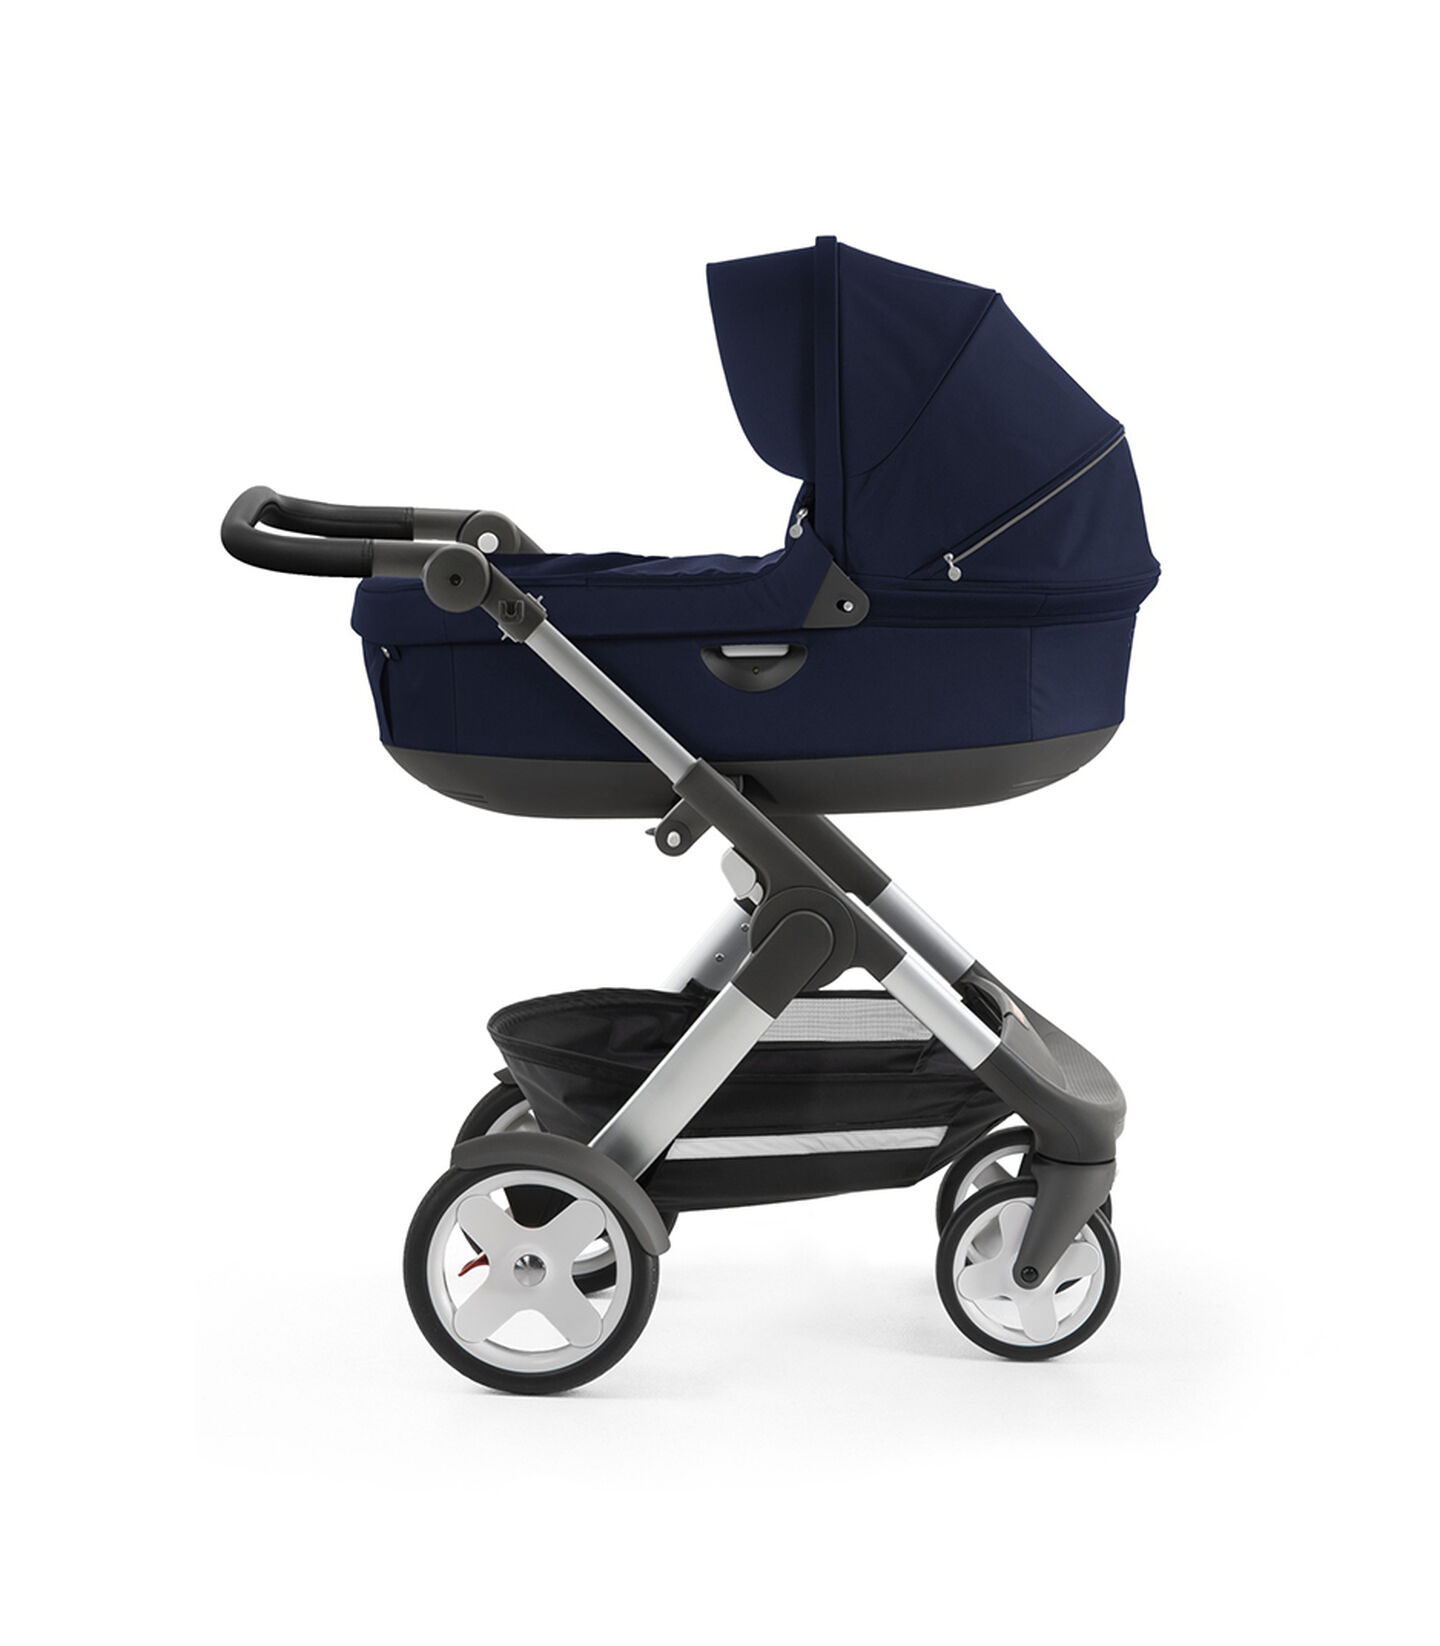 Stokke® Trailz™ with silver chassis and Stokke® Stroller Carry Cot, Deep Blue. Classic Wheels.